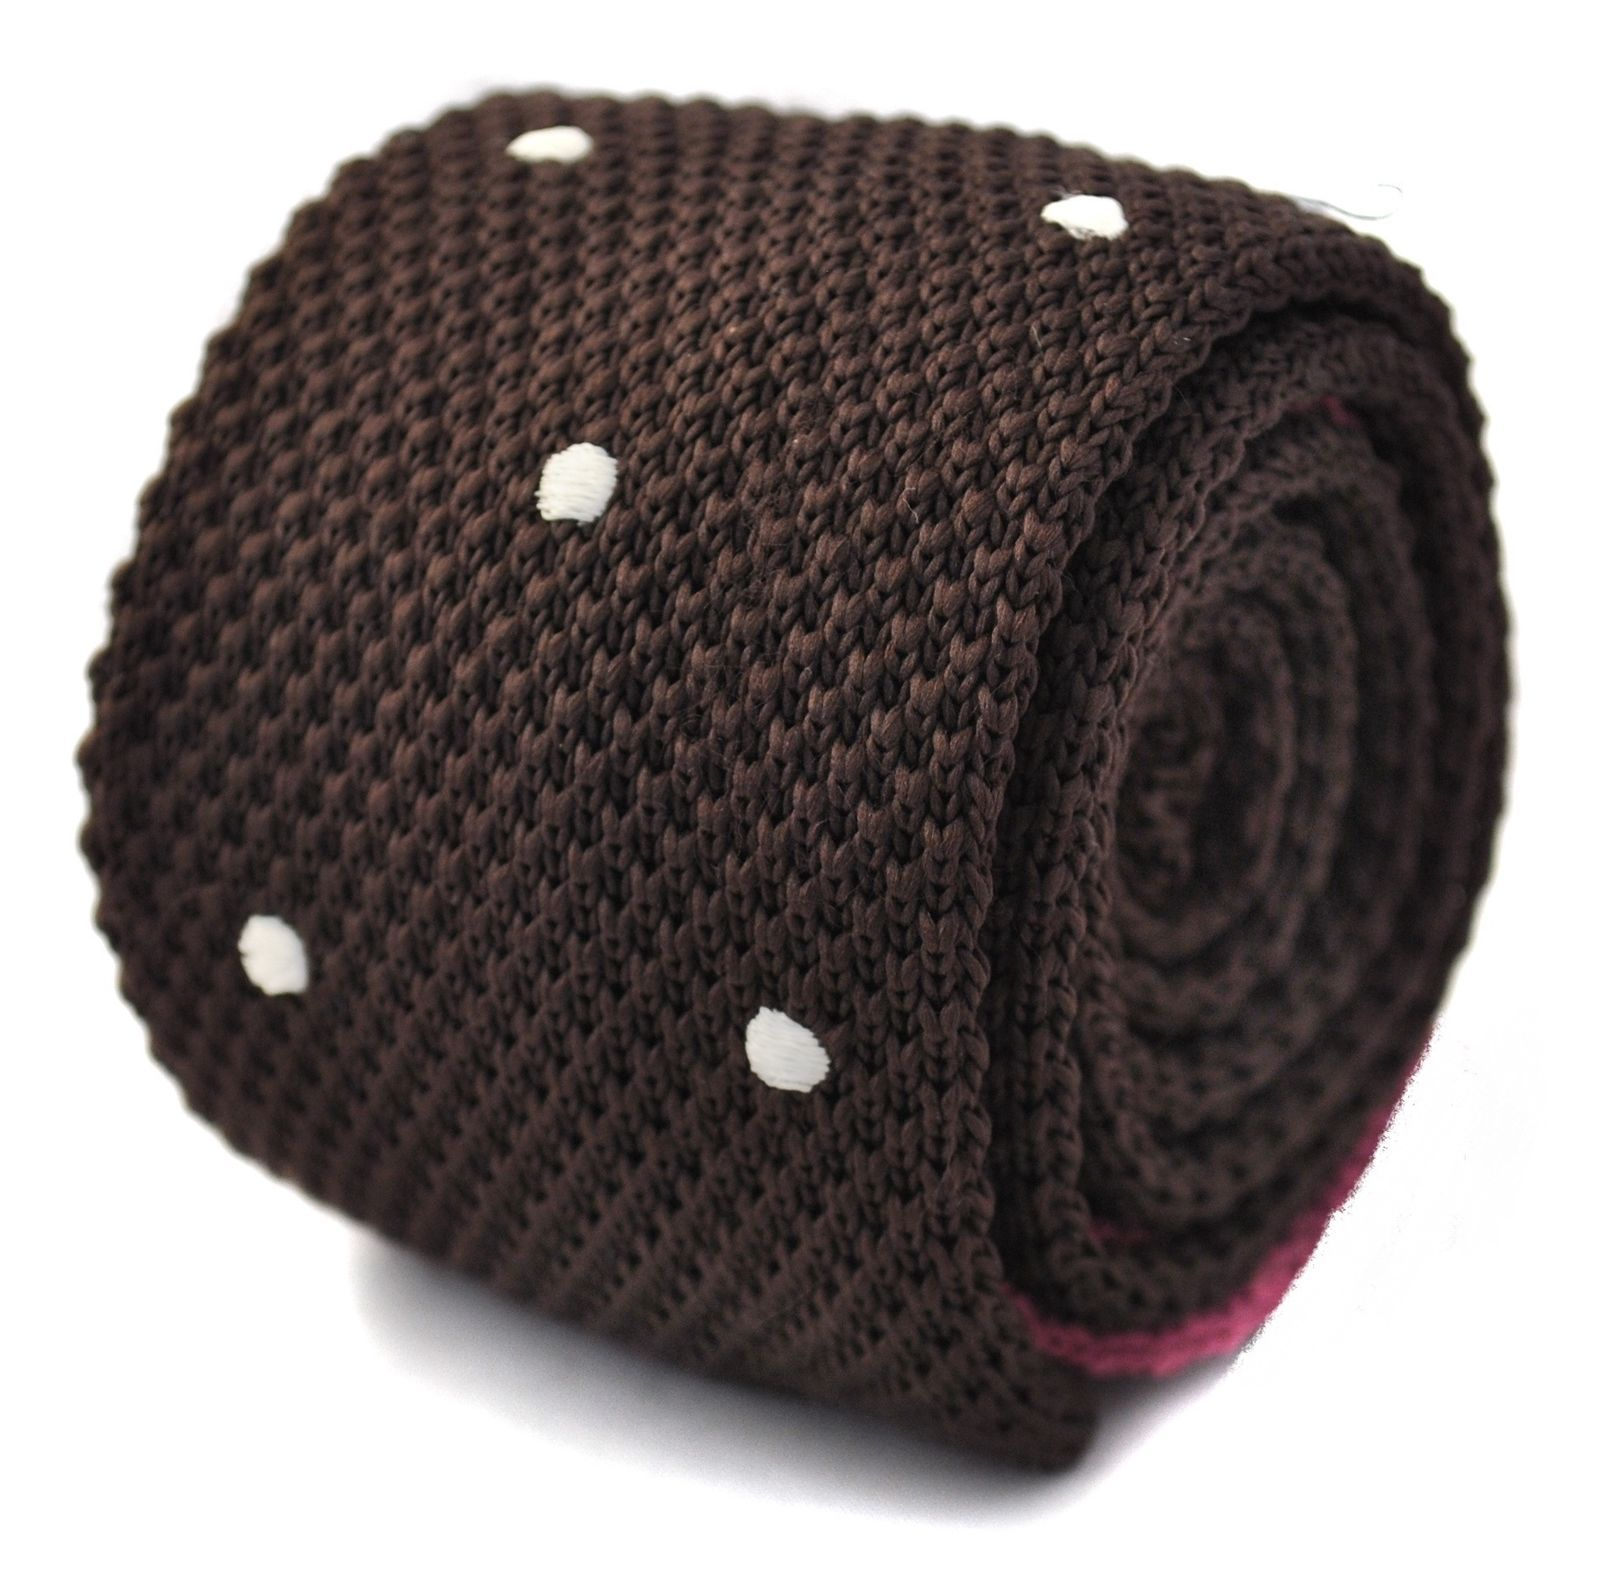 Frederick Thomas knitted chocolate brown and white spotted tie